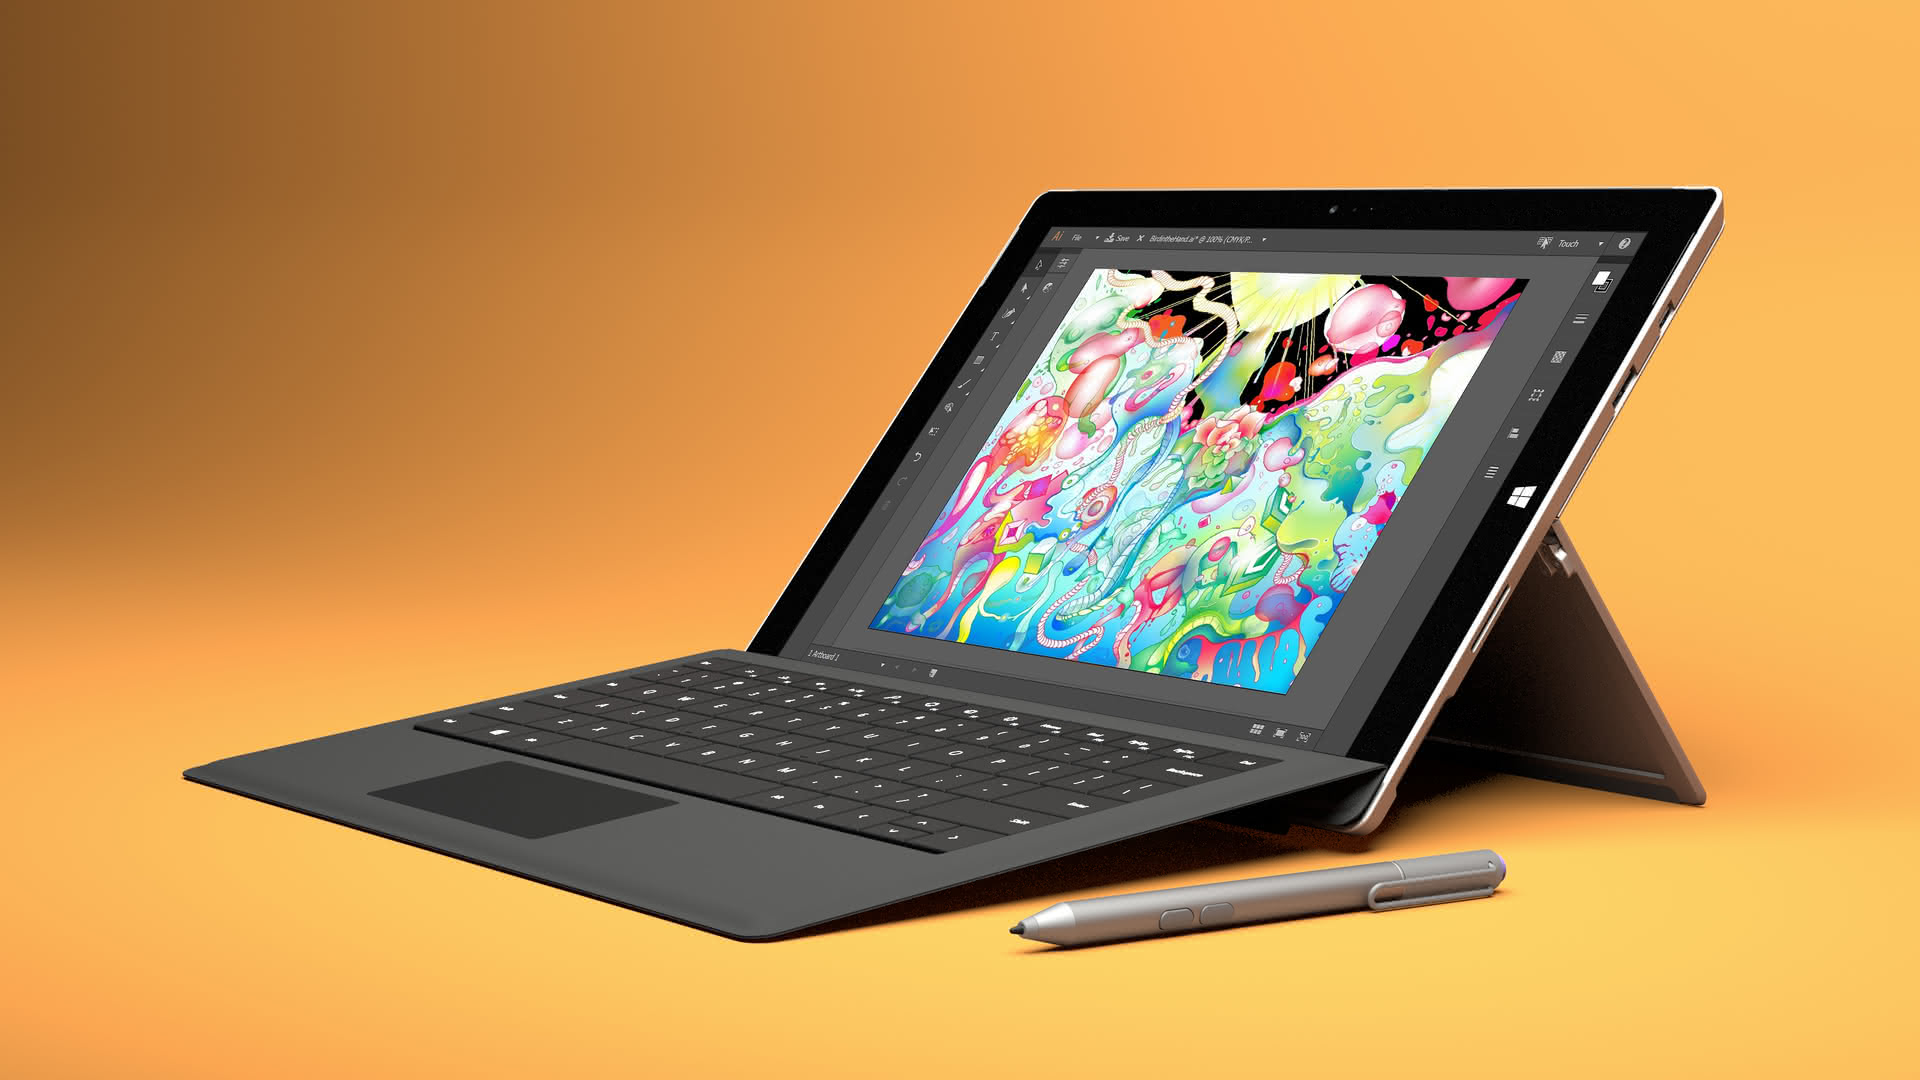 the microsoft surface pro 3 In-depth review of the microsoft surface pro 3 (intel core i5 4300u, intel hd graphics 4400, 120, 08 kg) with numerous measurements, benchmarks, and evaluations.